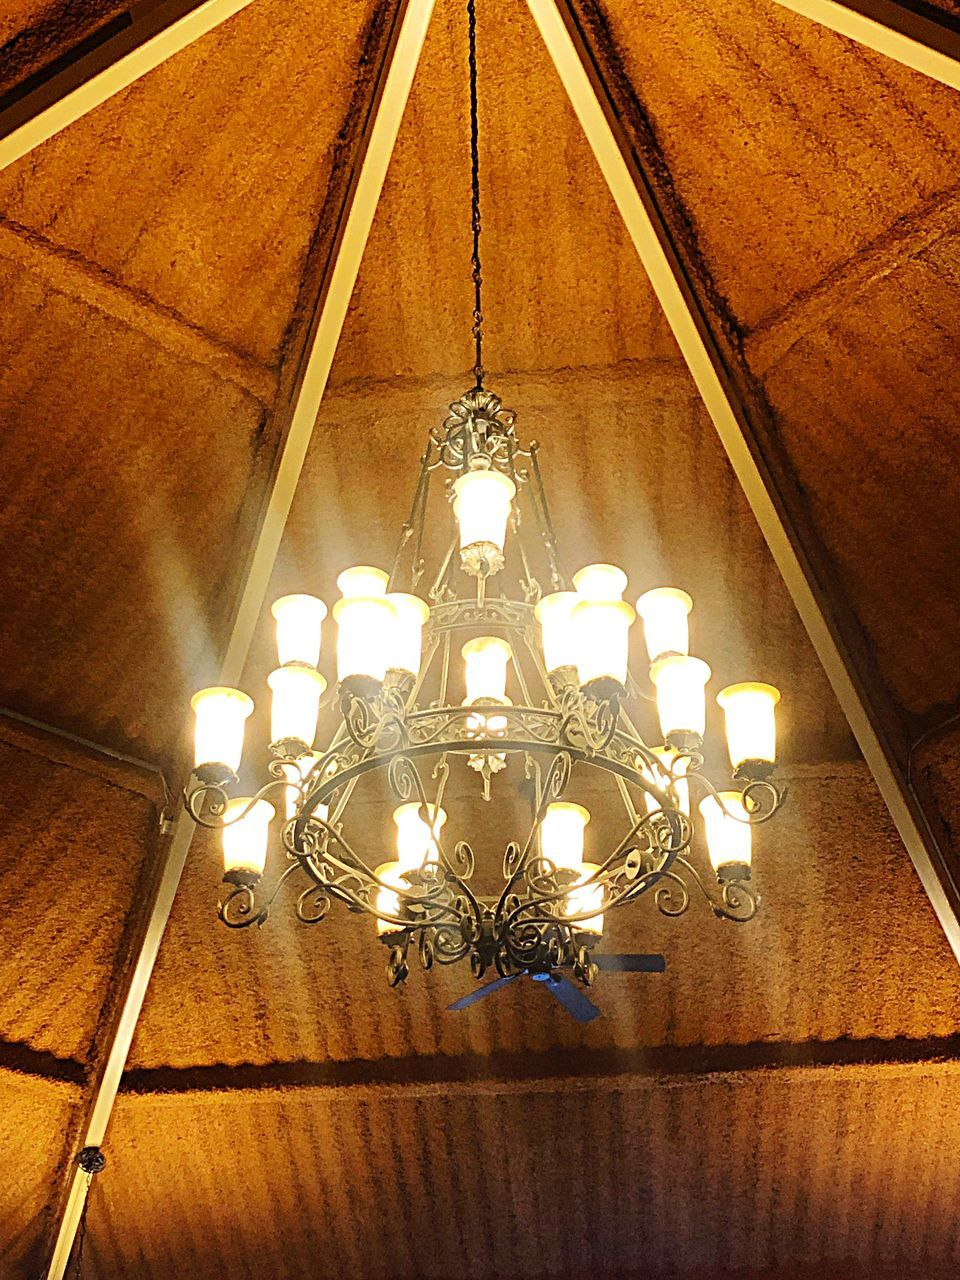 lighting equipment, illuminated, ceiling, indoors, chandelier, low angle view, hanging, architecture, electricity, light, no people, built structure, decoration, pendant light, glowing, electric light, luxury, light - natural phenomenon, wealth, home interior, electric lamp, ornate, directly below, light fixture, glass